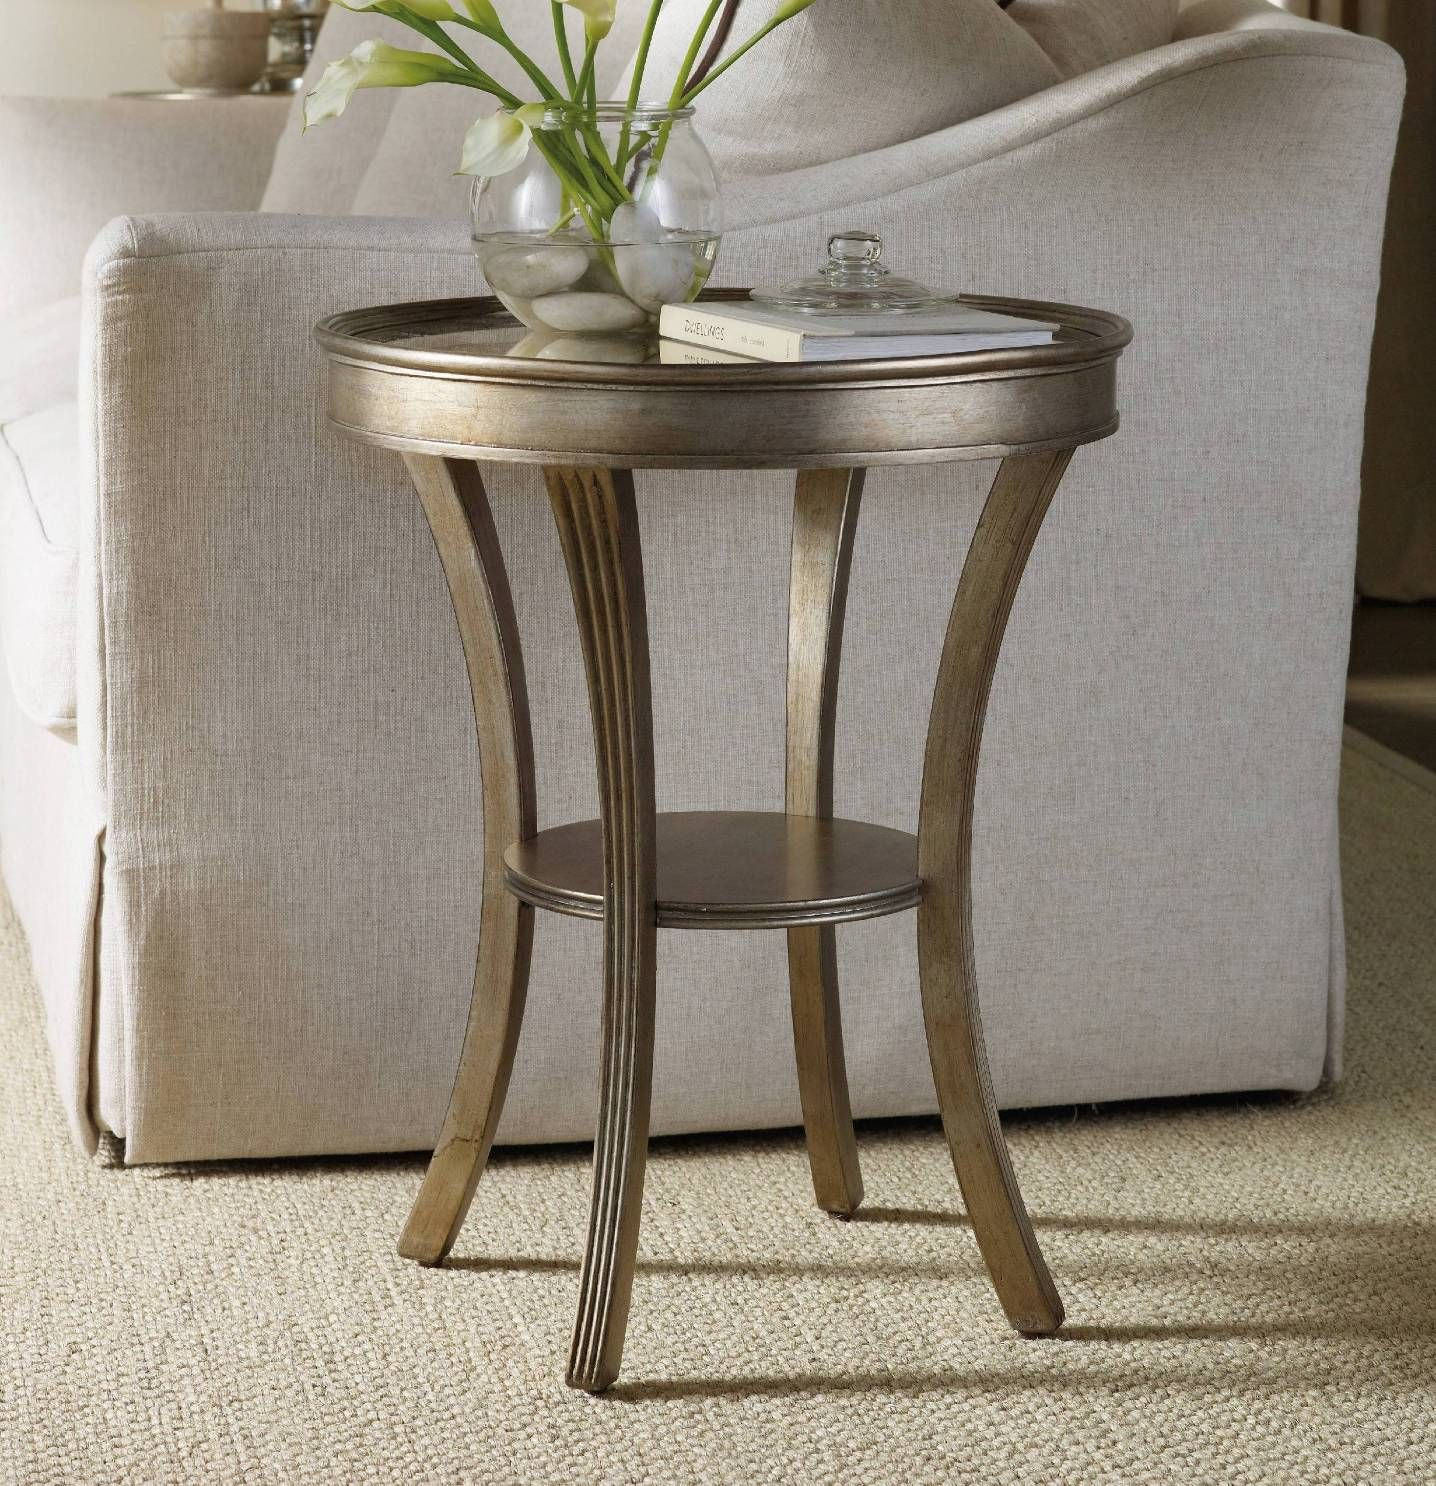 small accent tables stylish touch with benefits for your home end kitchen table furniture wood floor threshold plastic high patio chairs ethan allen vintage painted bedside chests